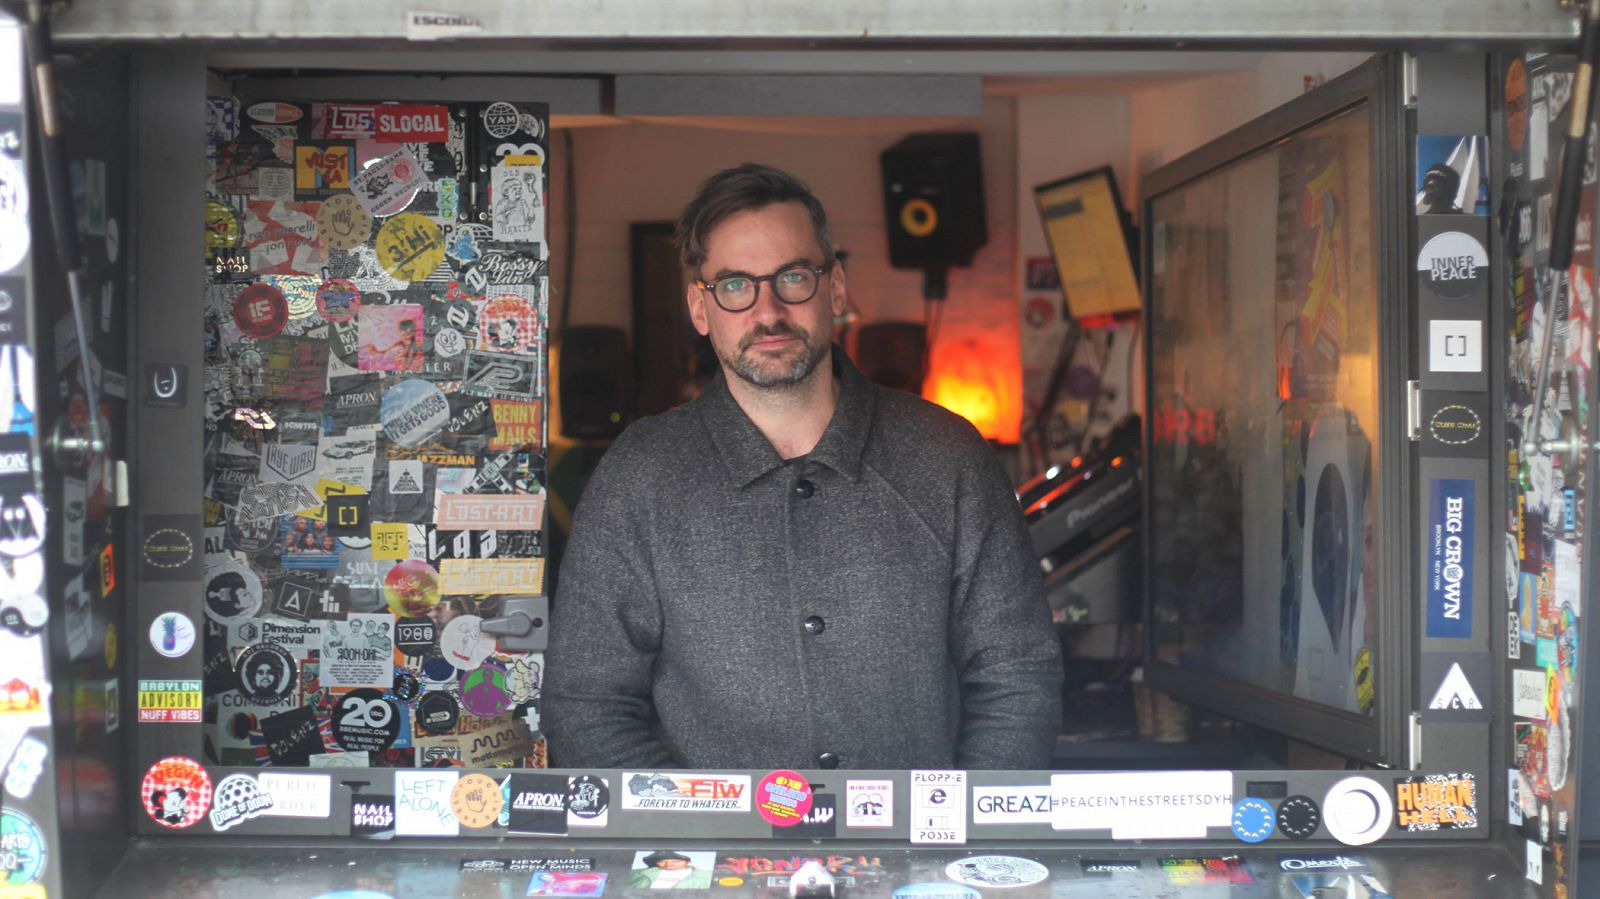 https://www.mixcloud.com/NTSRadio/bonobo-20th-november-2017/ Episode Image